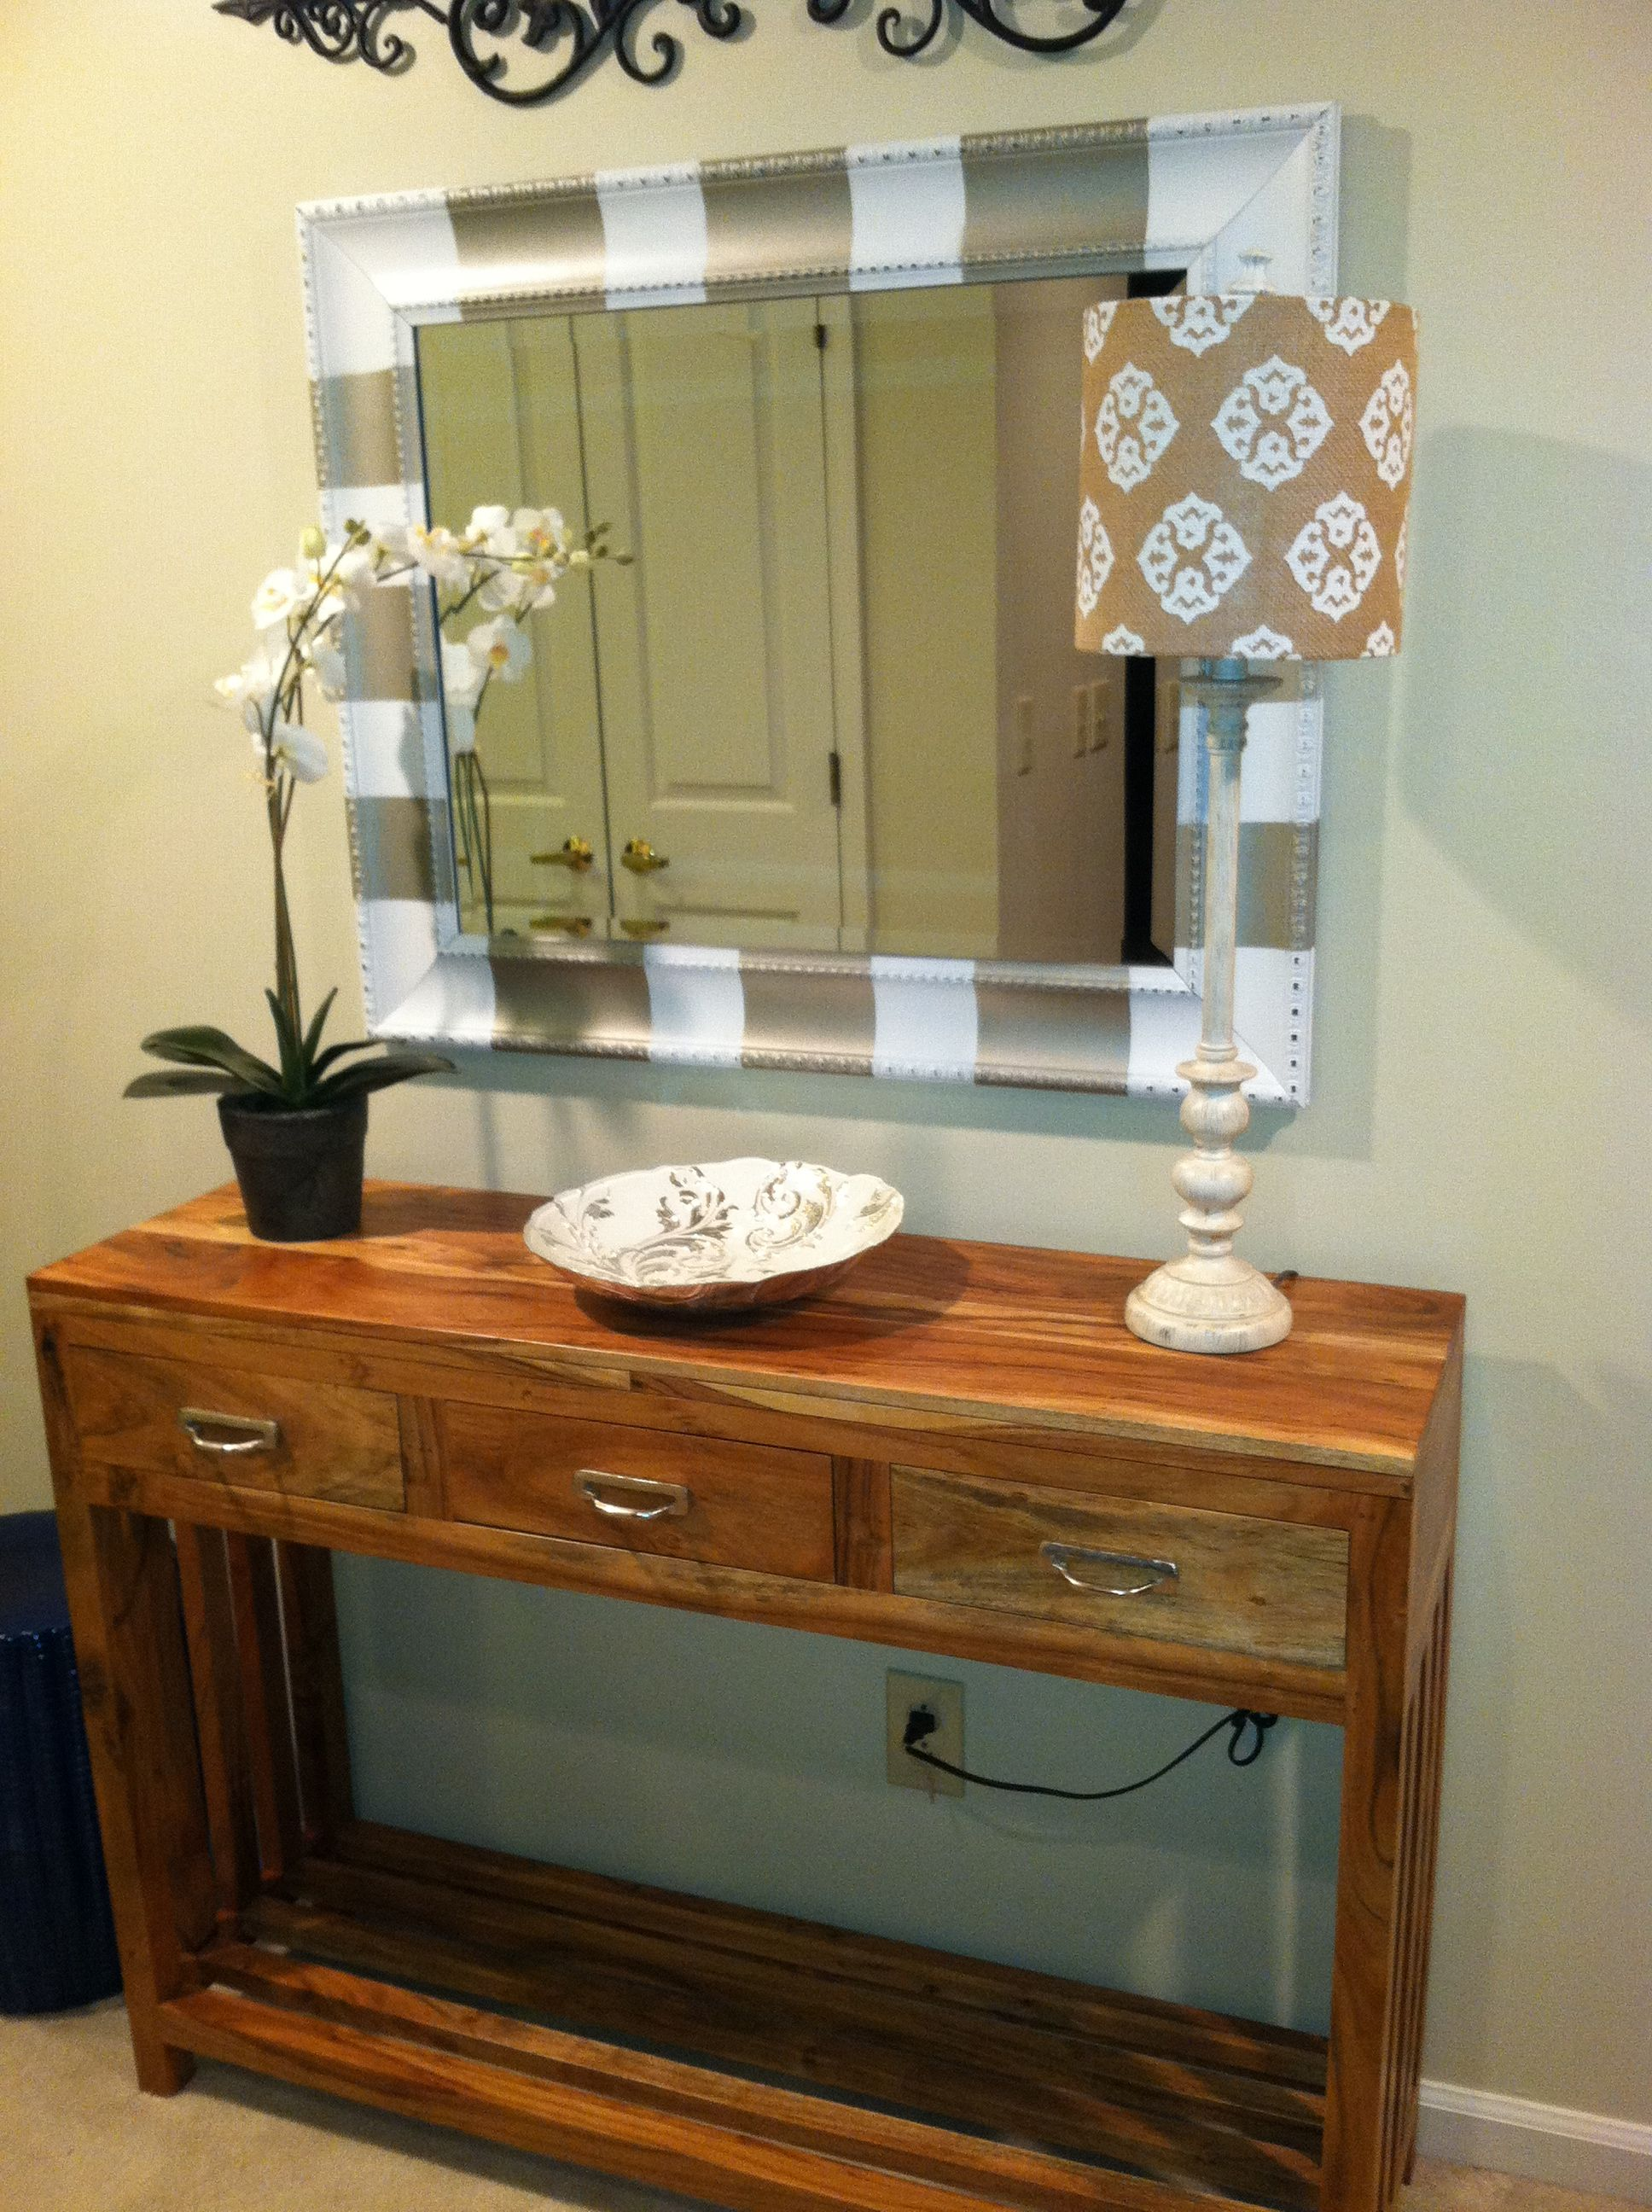 Tj maxx find entryway table dream home pinterest entryway tj maxx find entryway table geotapseo Choice Image